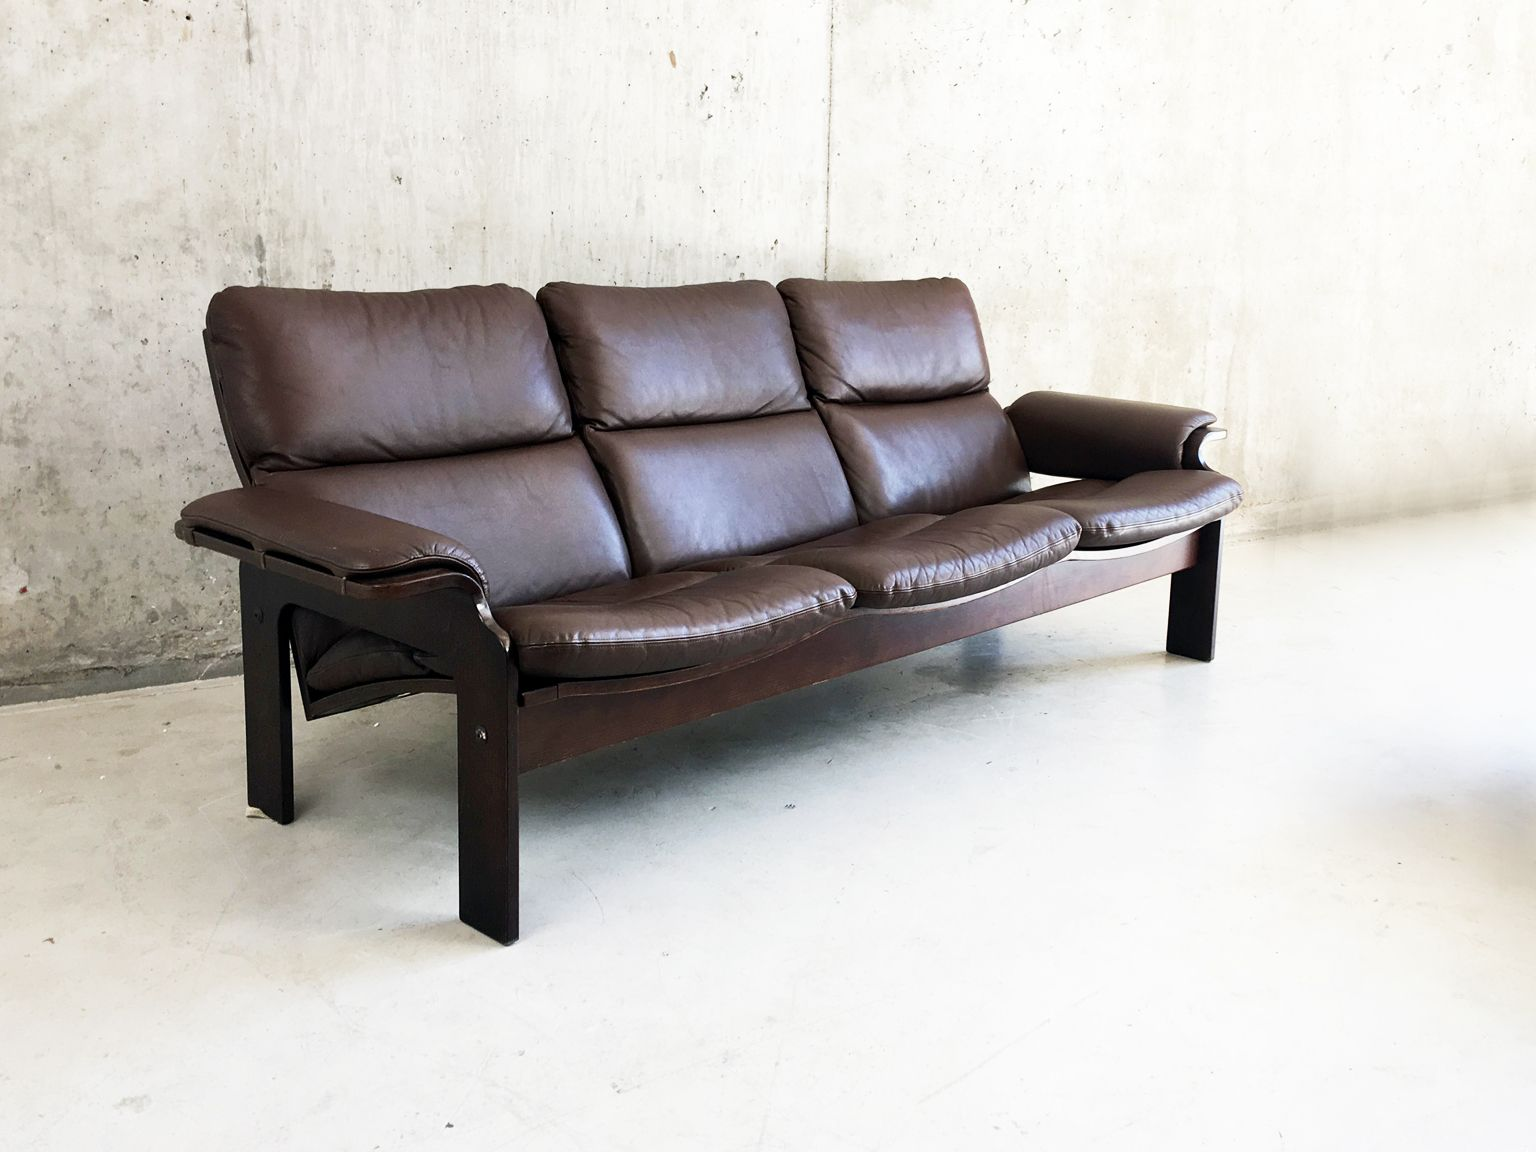 braunes d nisches drei sitzer ledersofa von jeki mobler 1970er bei pamono kaufen. Black Bedroom Furniture Sets. Home Design Ideas